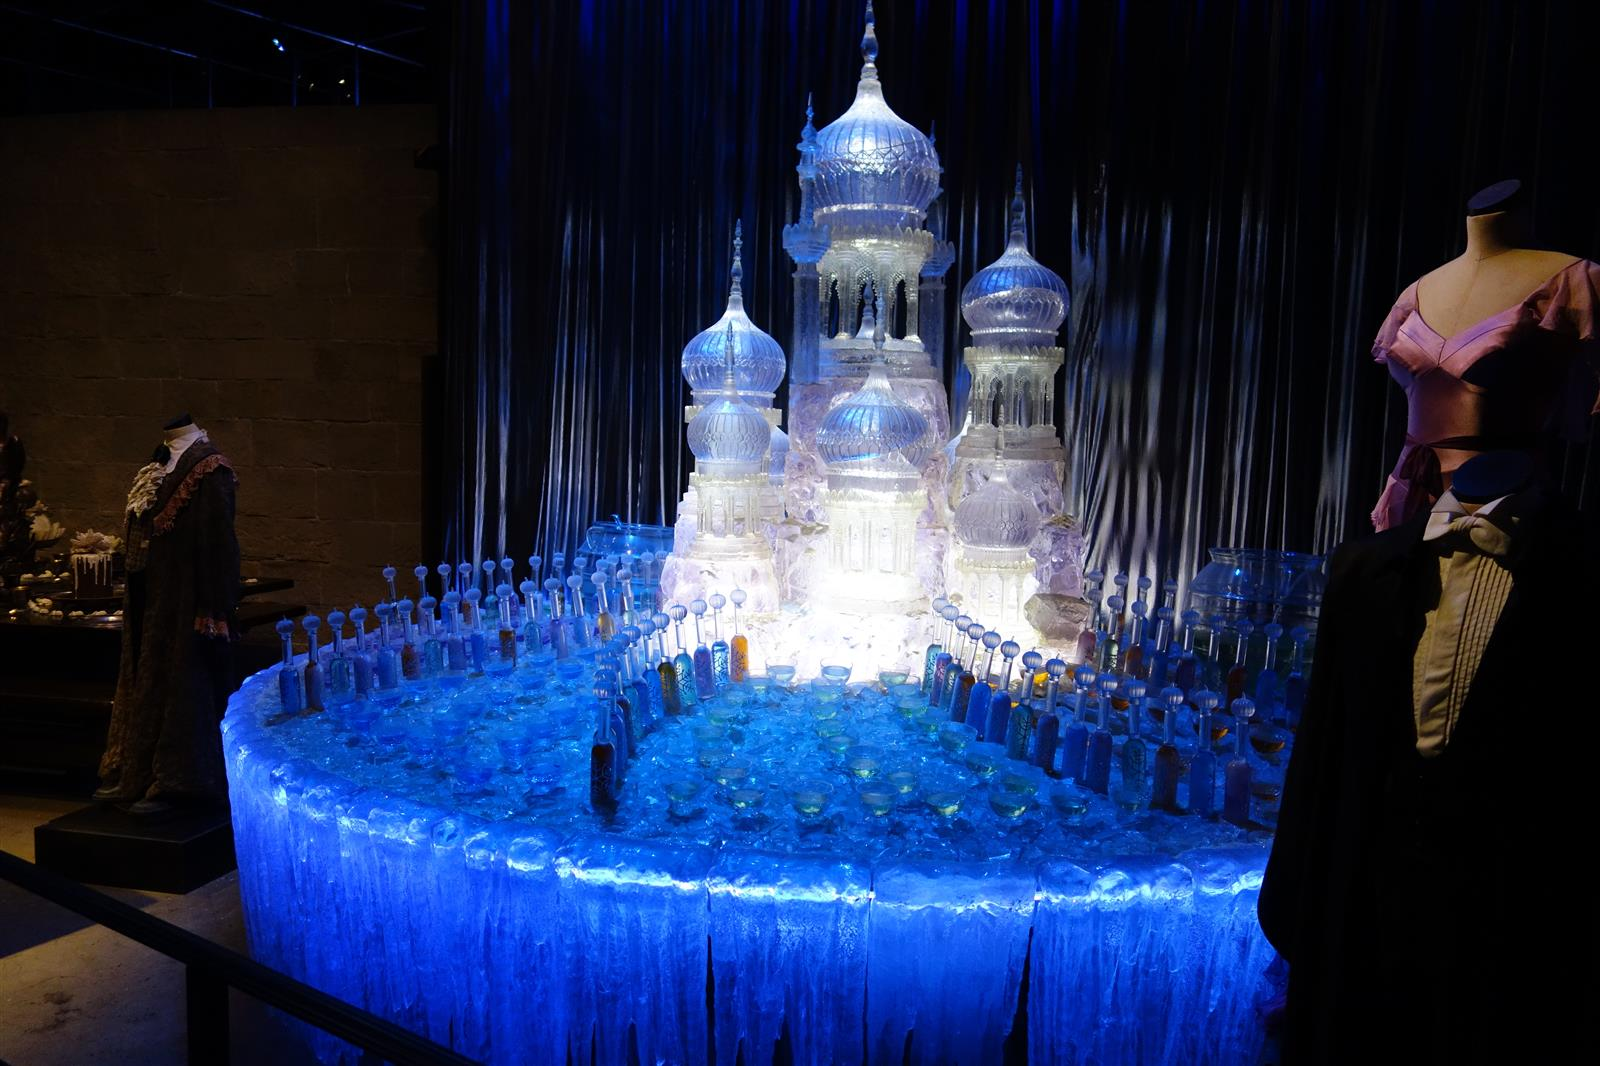 7. Yule Ball Ice Sculpture